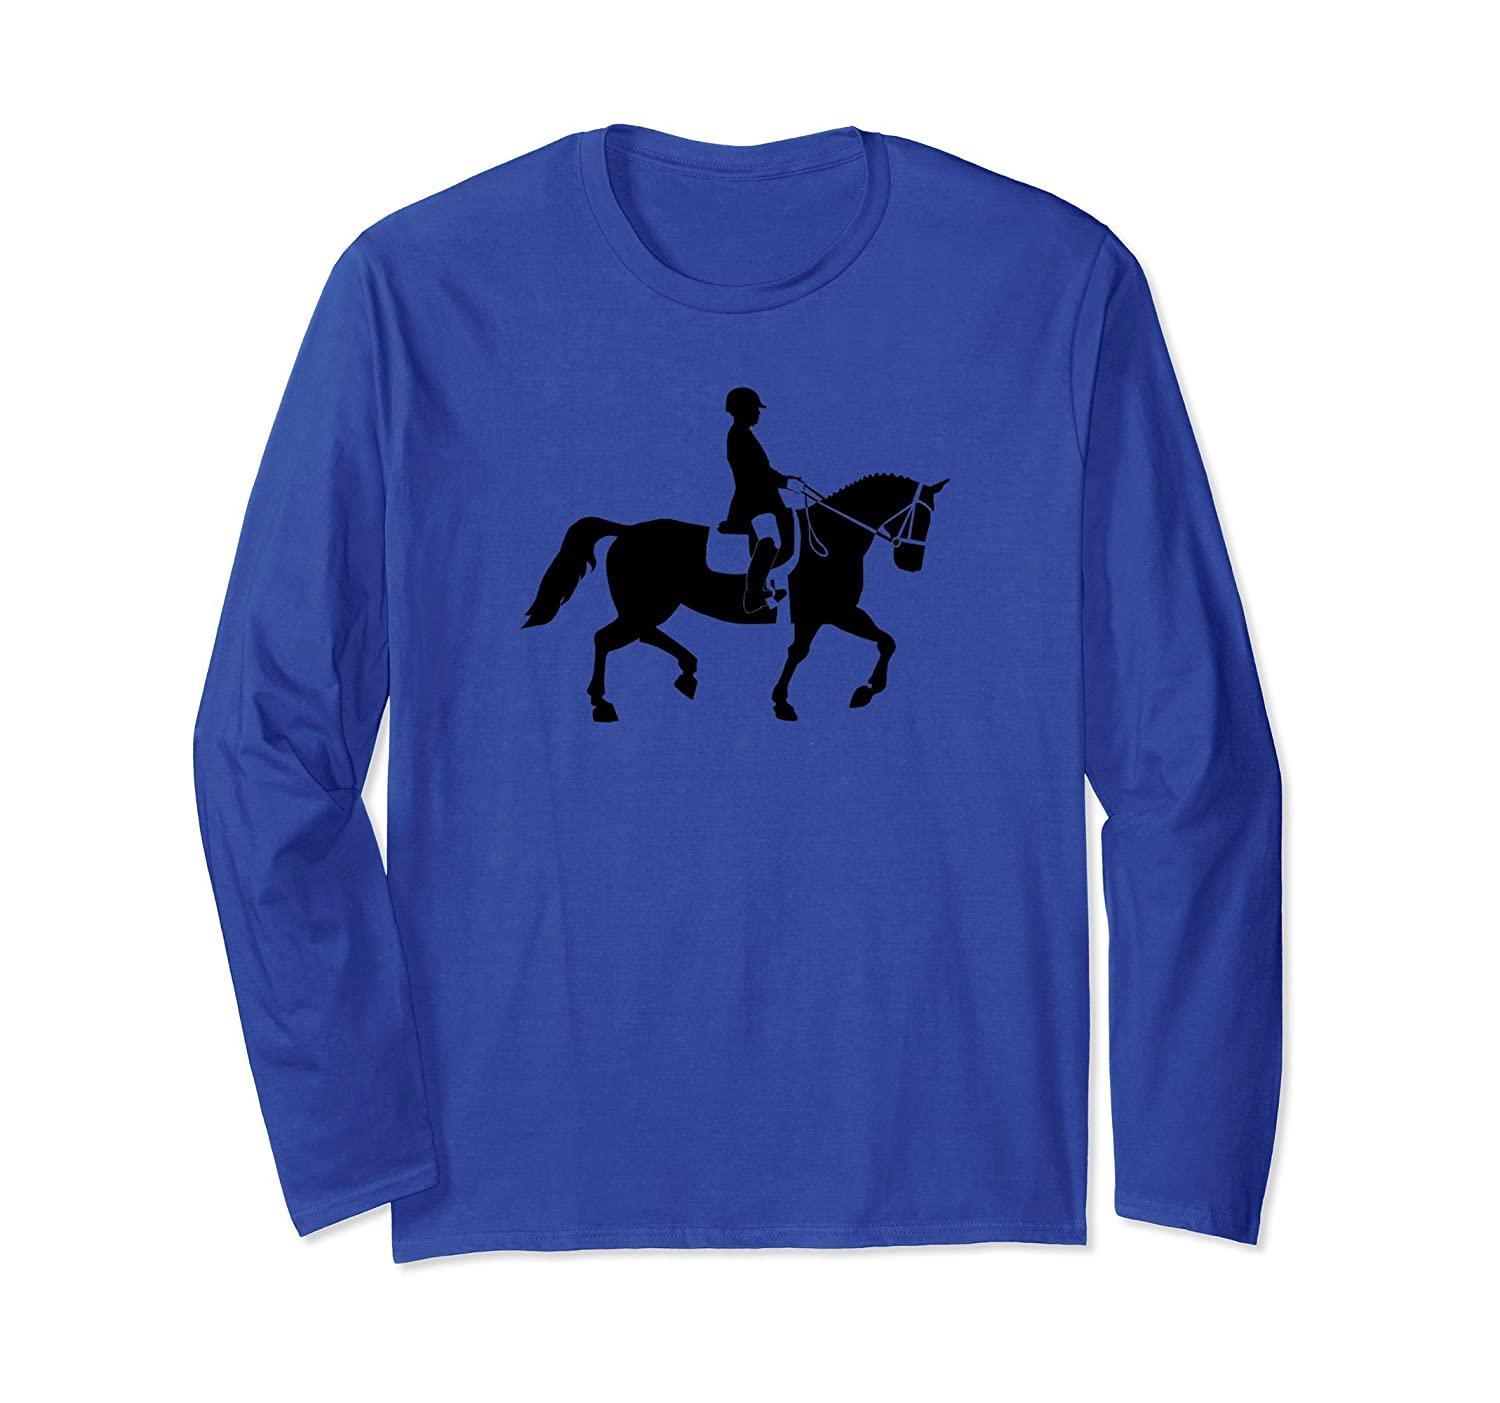 Horse dressage equestrian riding competition T-shirt-anz